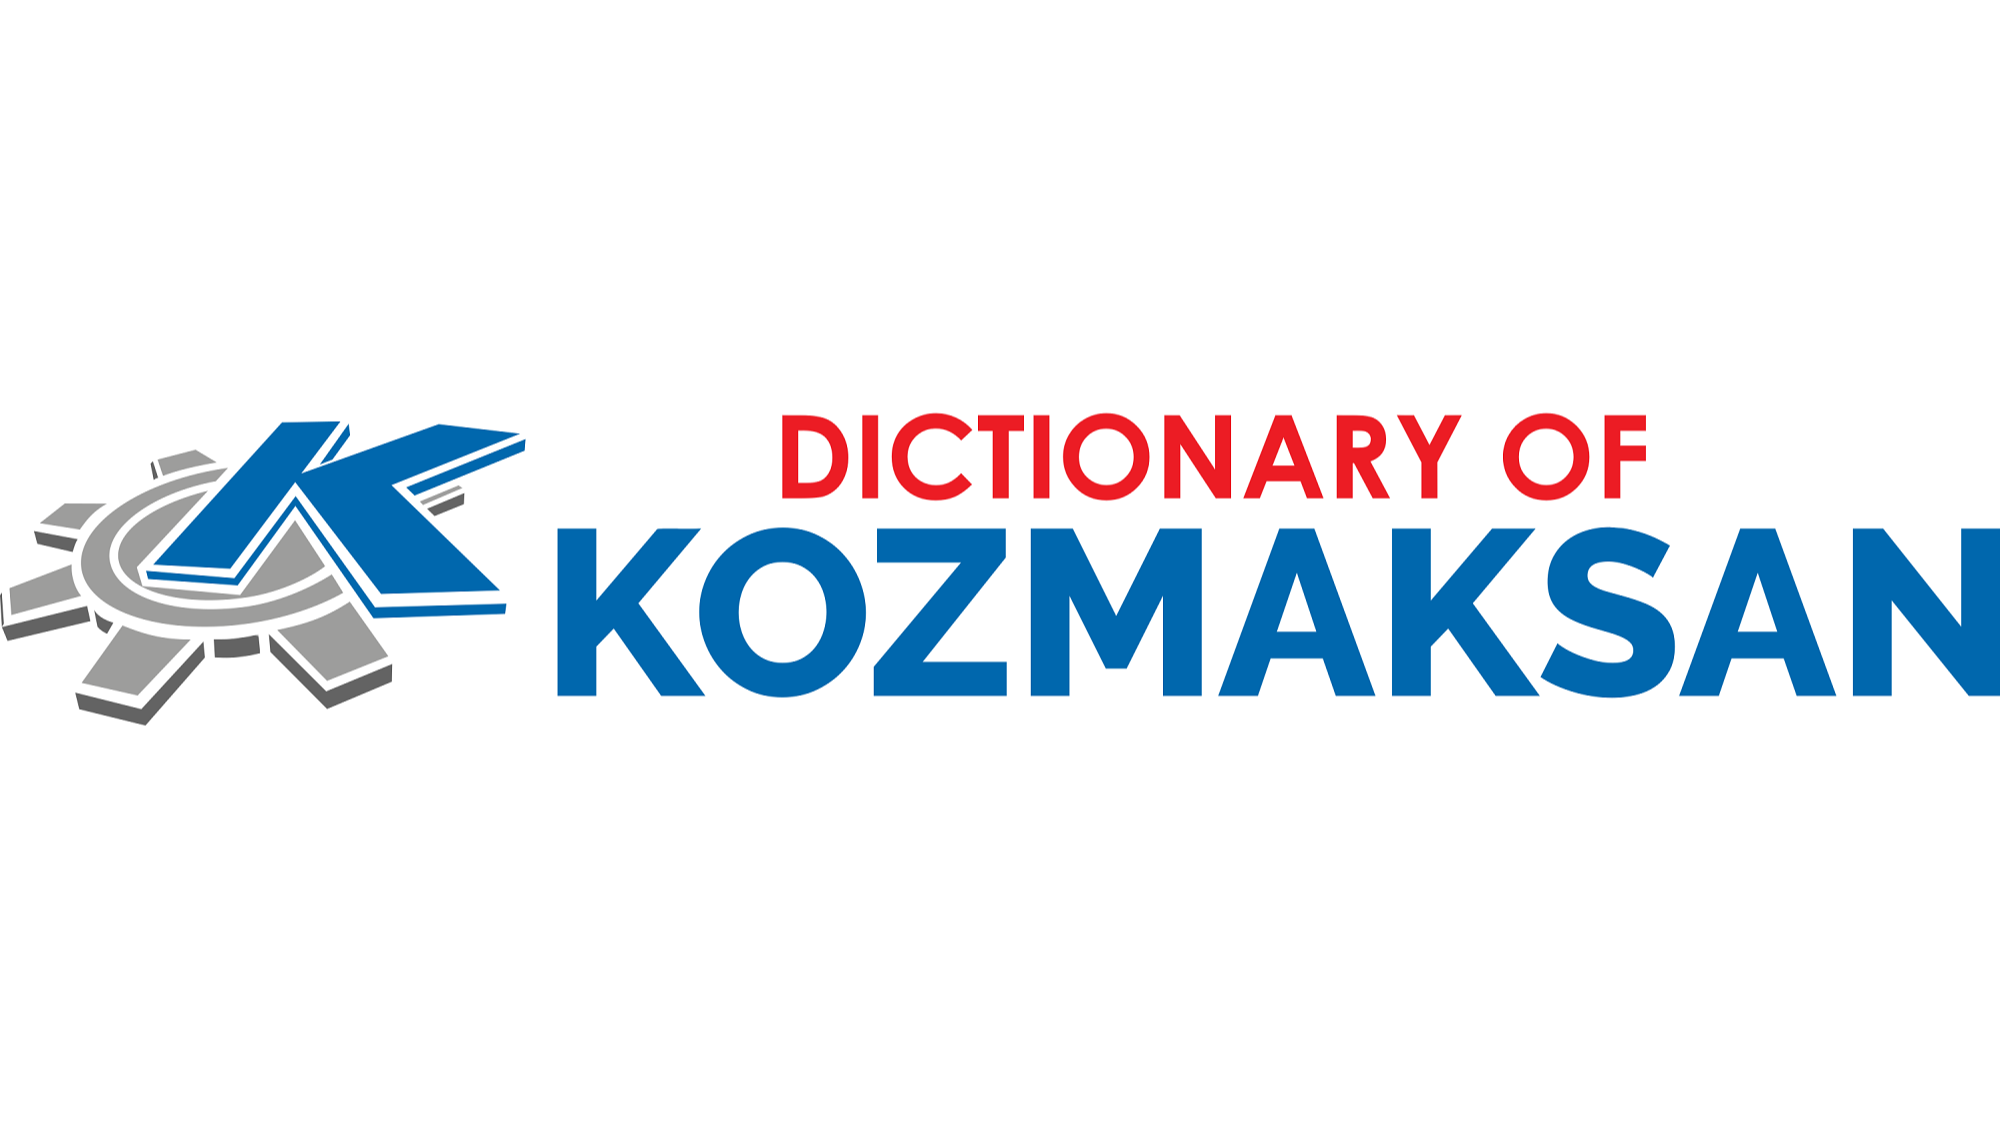 Dictionary of Kozmaksan